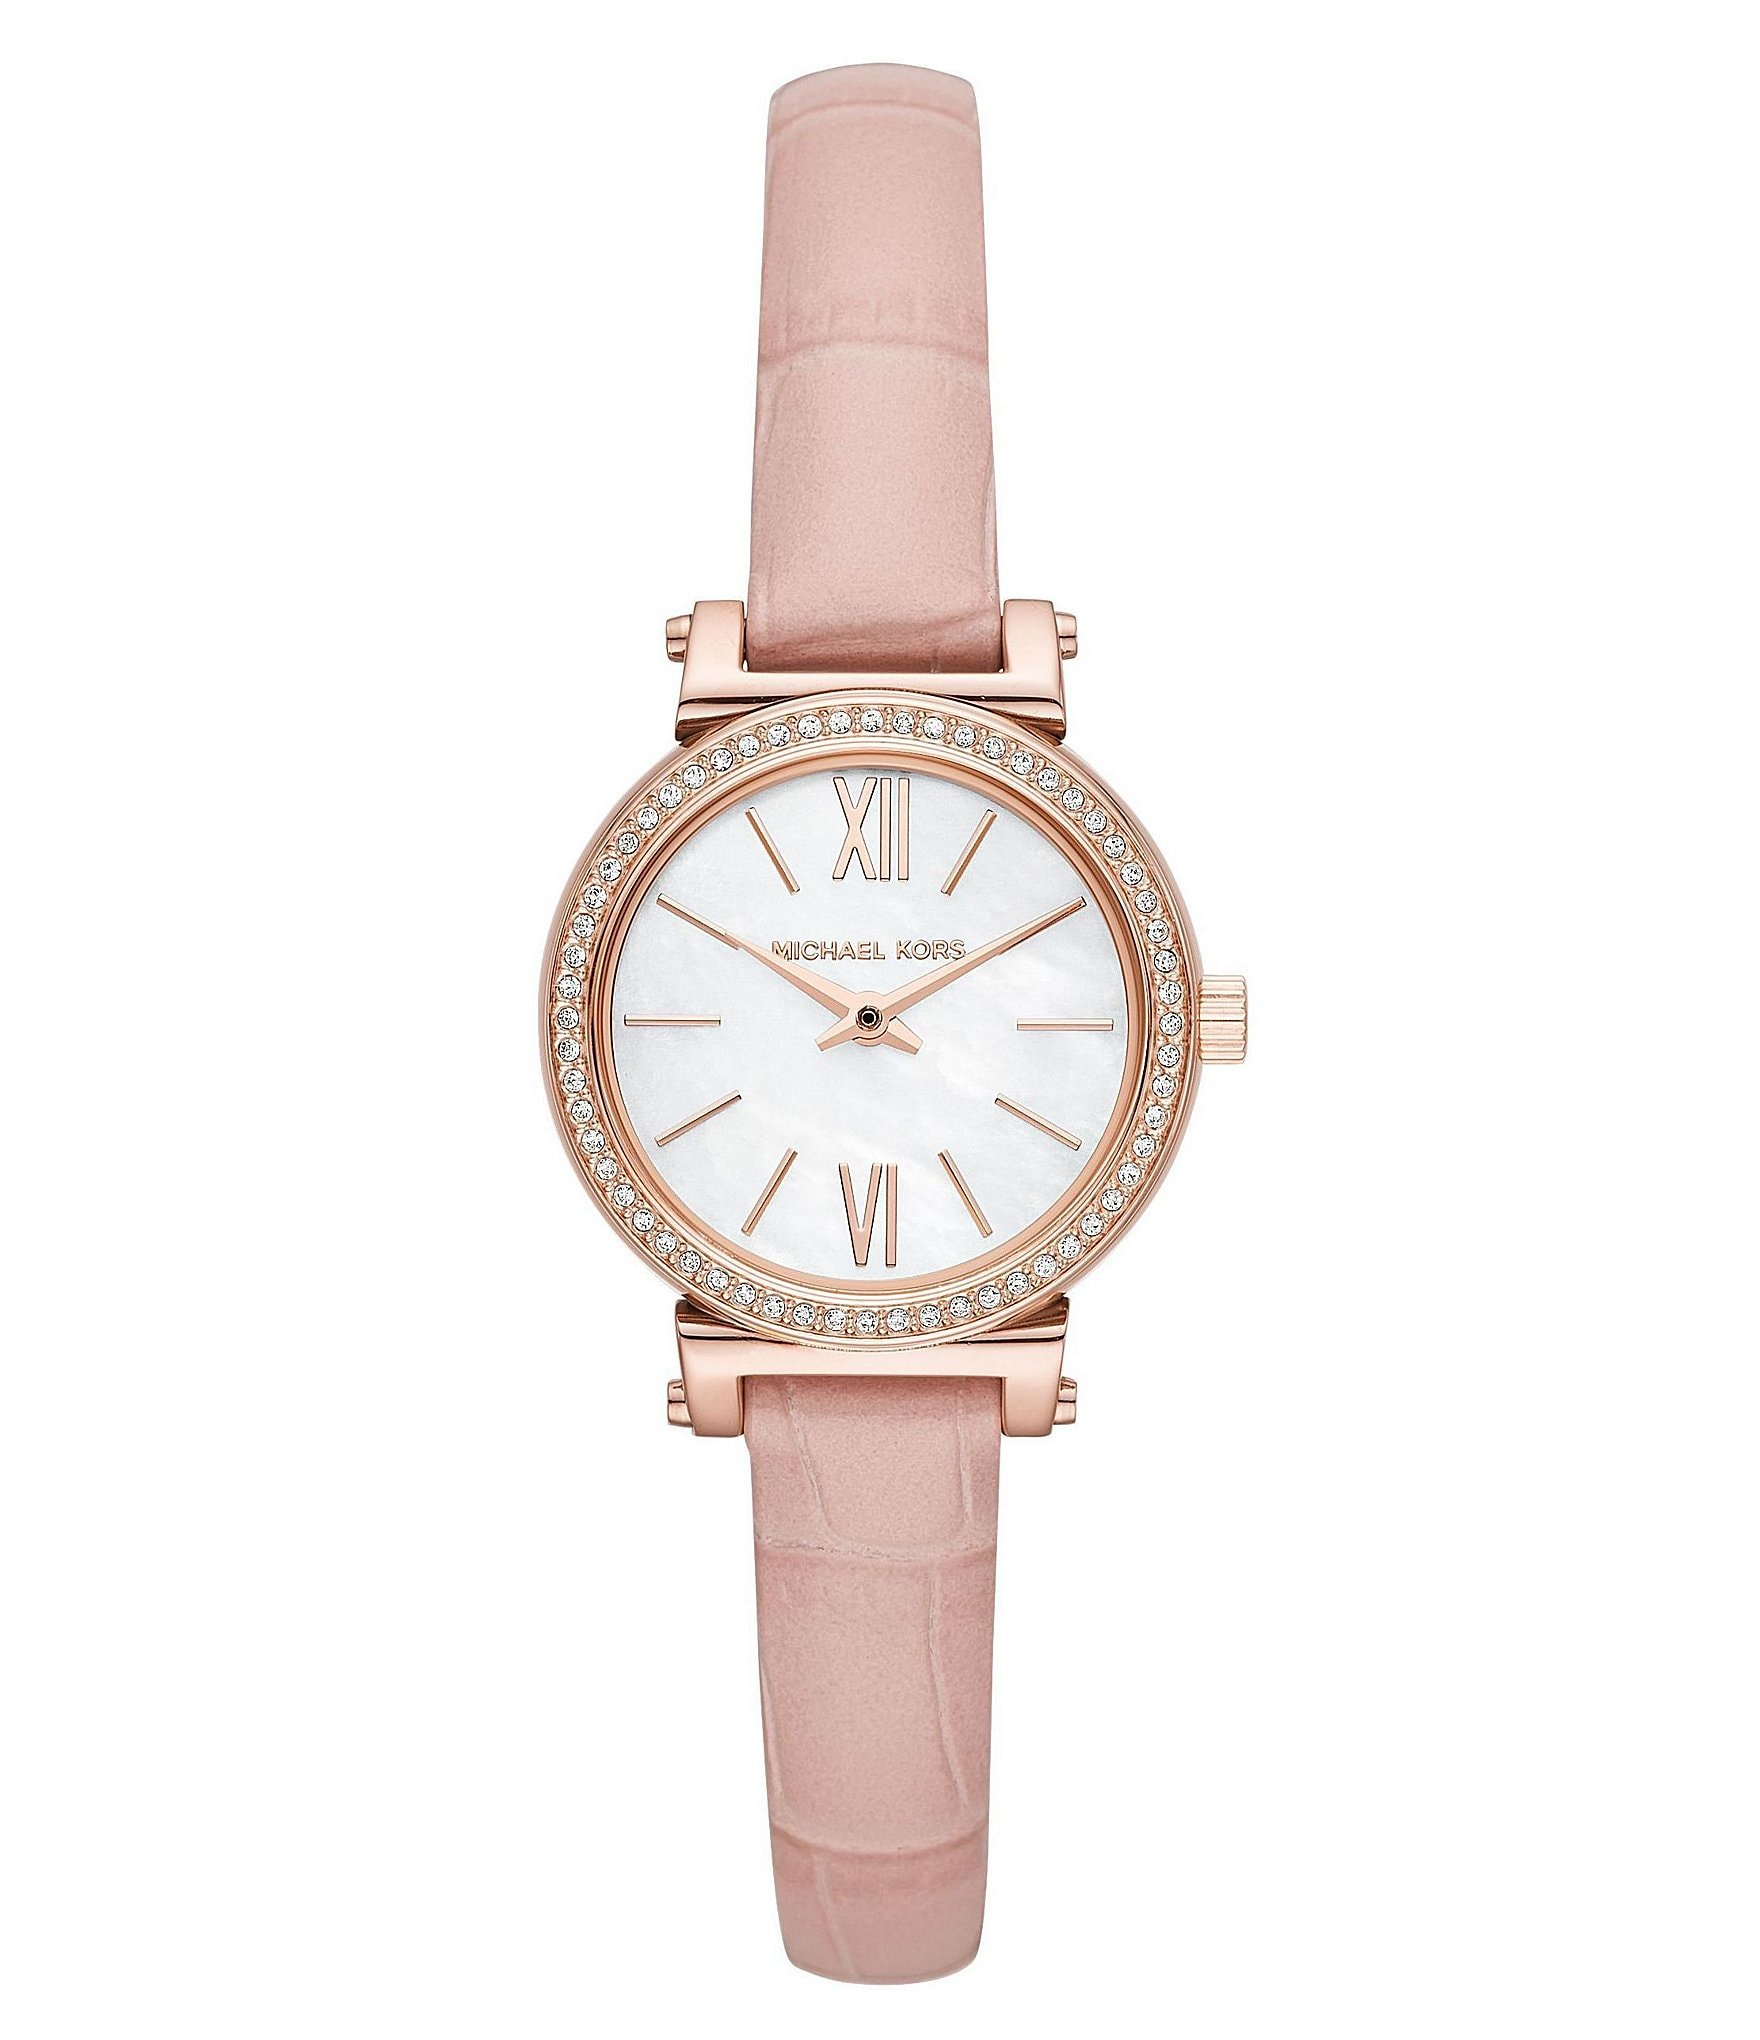 watch blush multi ted ruth strap online womens buyted main pdp at women leather s watches pink baker johnlewis rsp